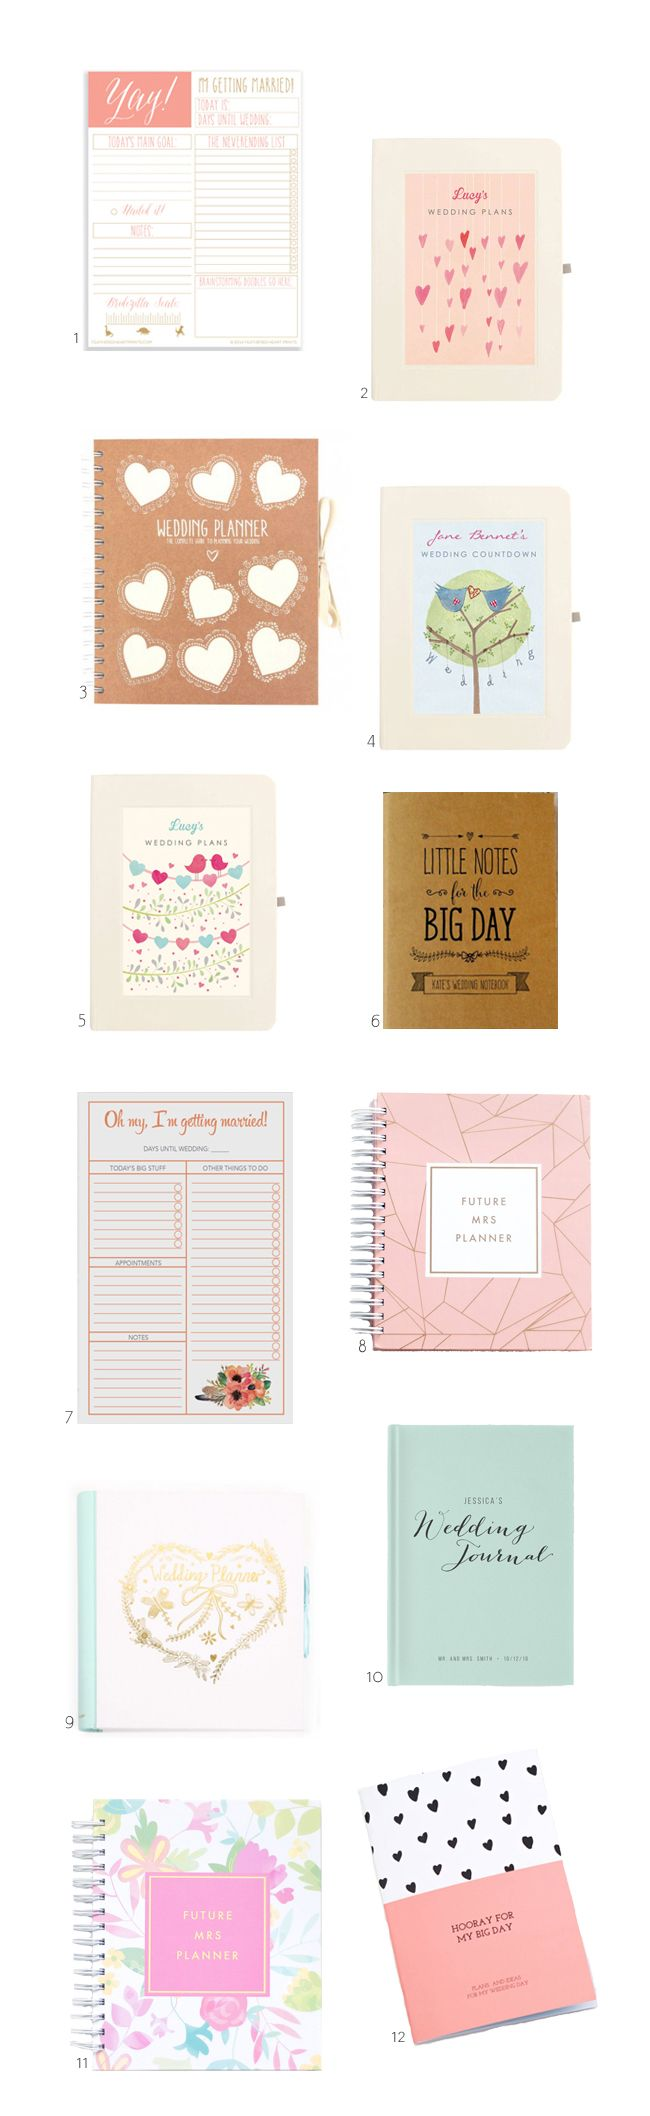 The best wedding planning notebooks about!